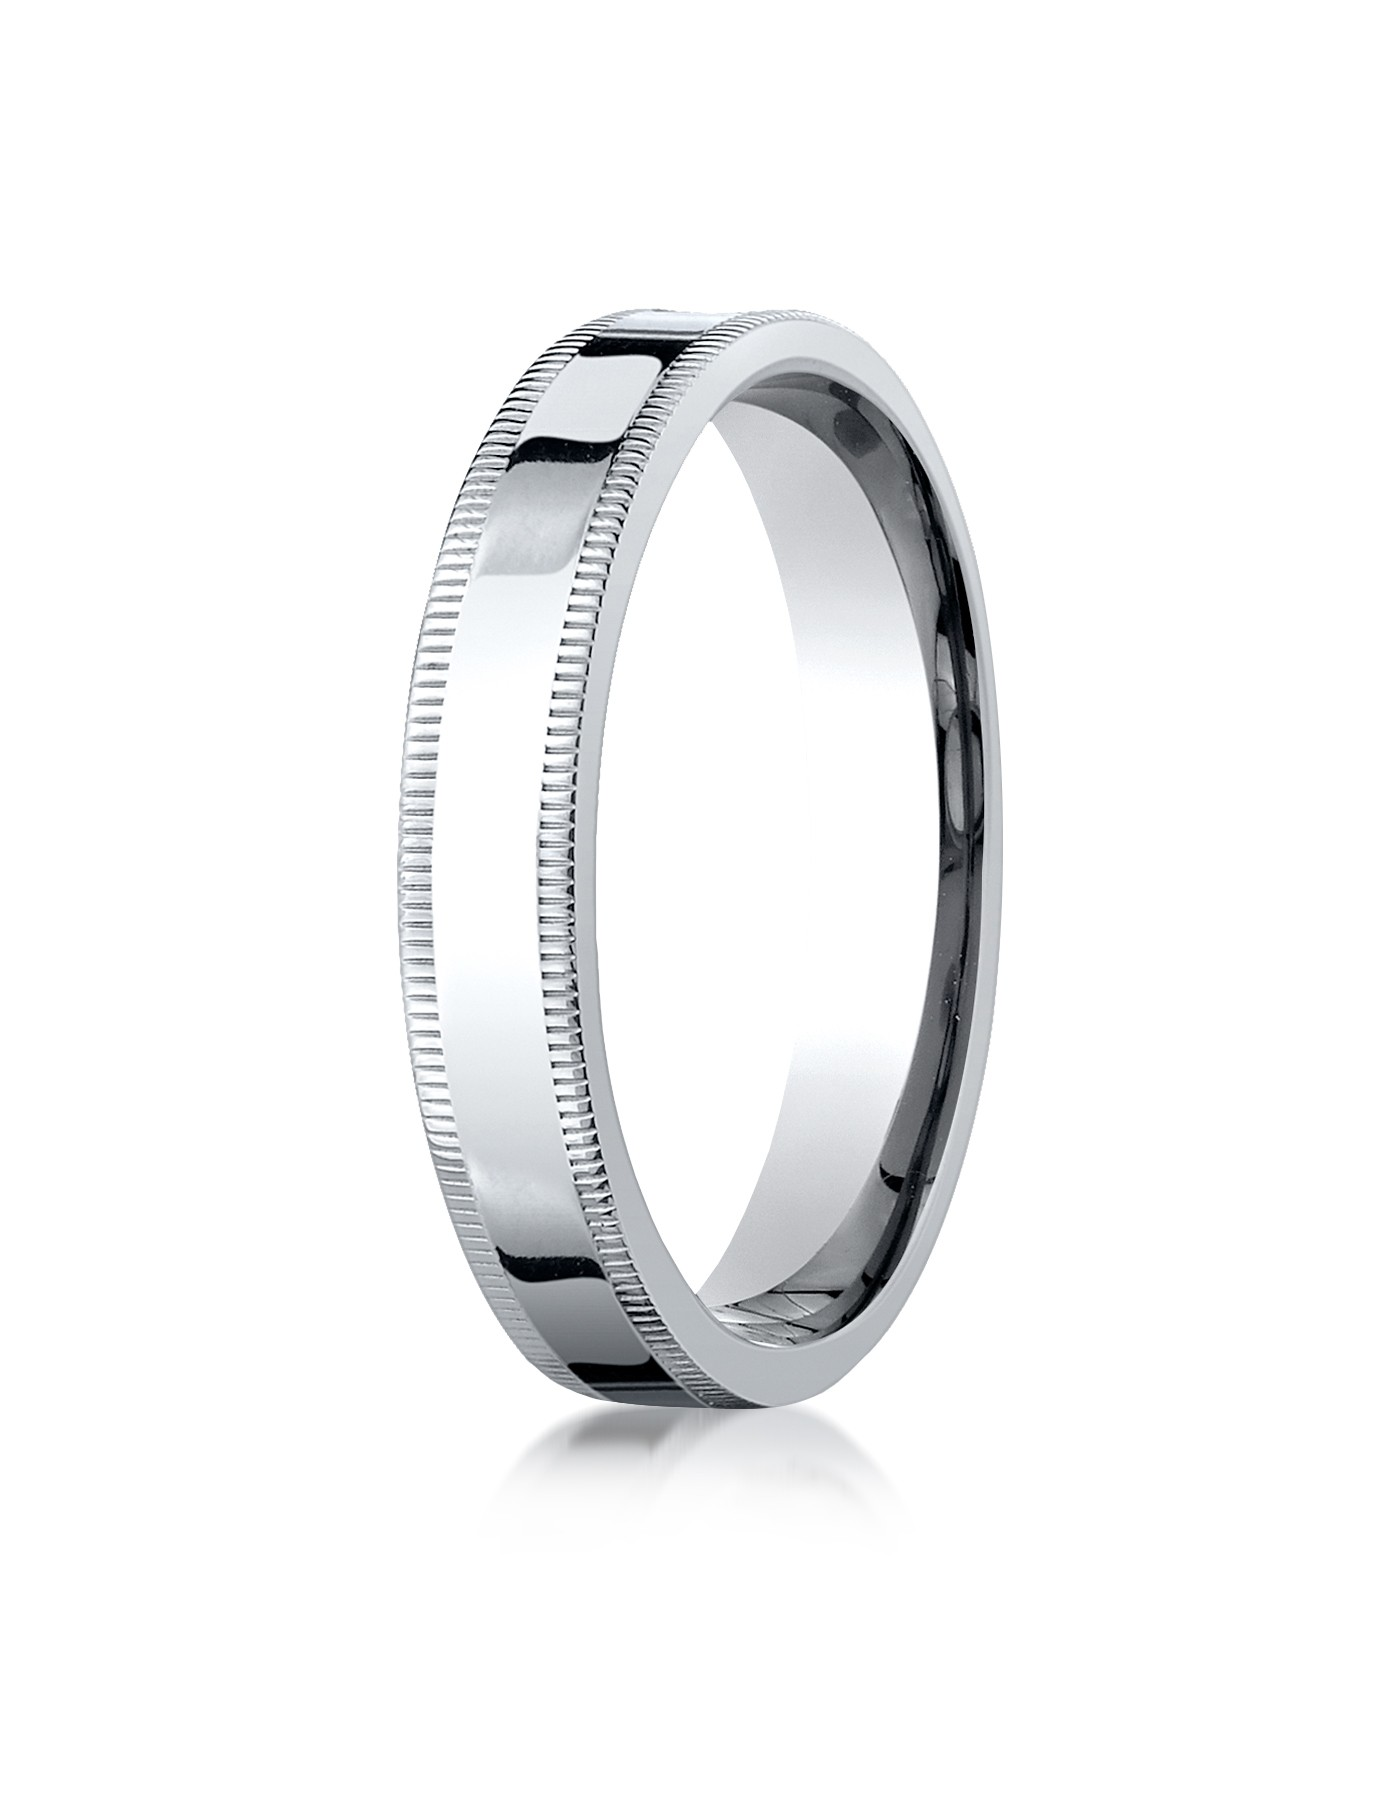 14k White Gold 4mm Flat Comfort-fit Ring With Milgrain